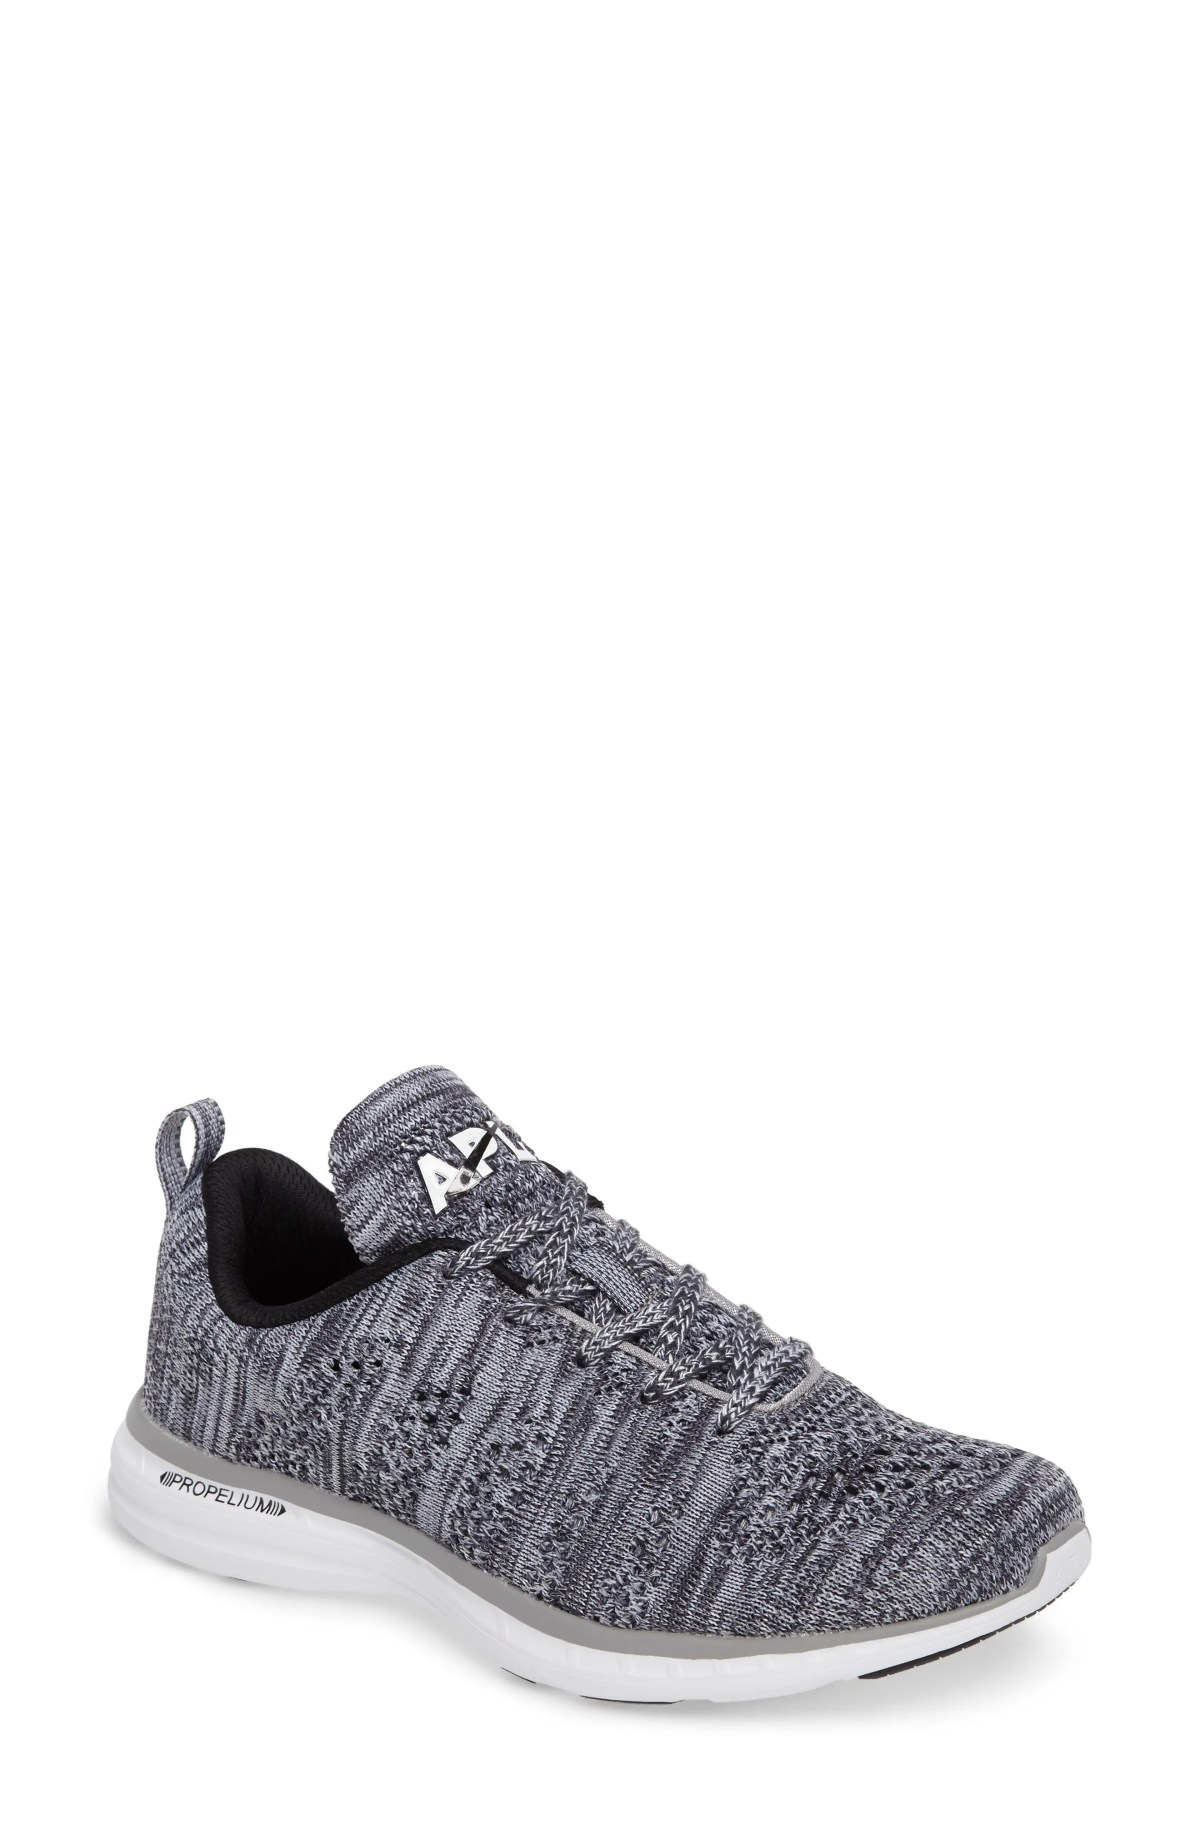 APL TechLoom Pro Knit Running Shoe, Main, color, HEATHER GREY